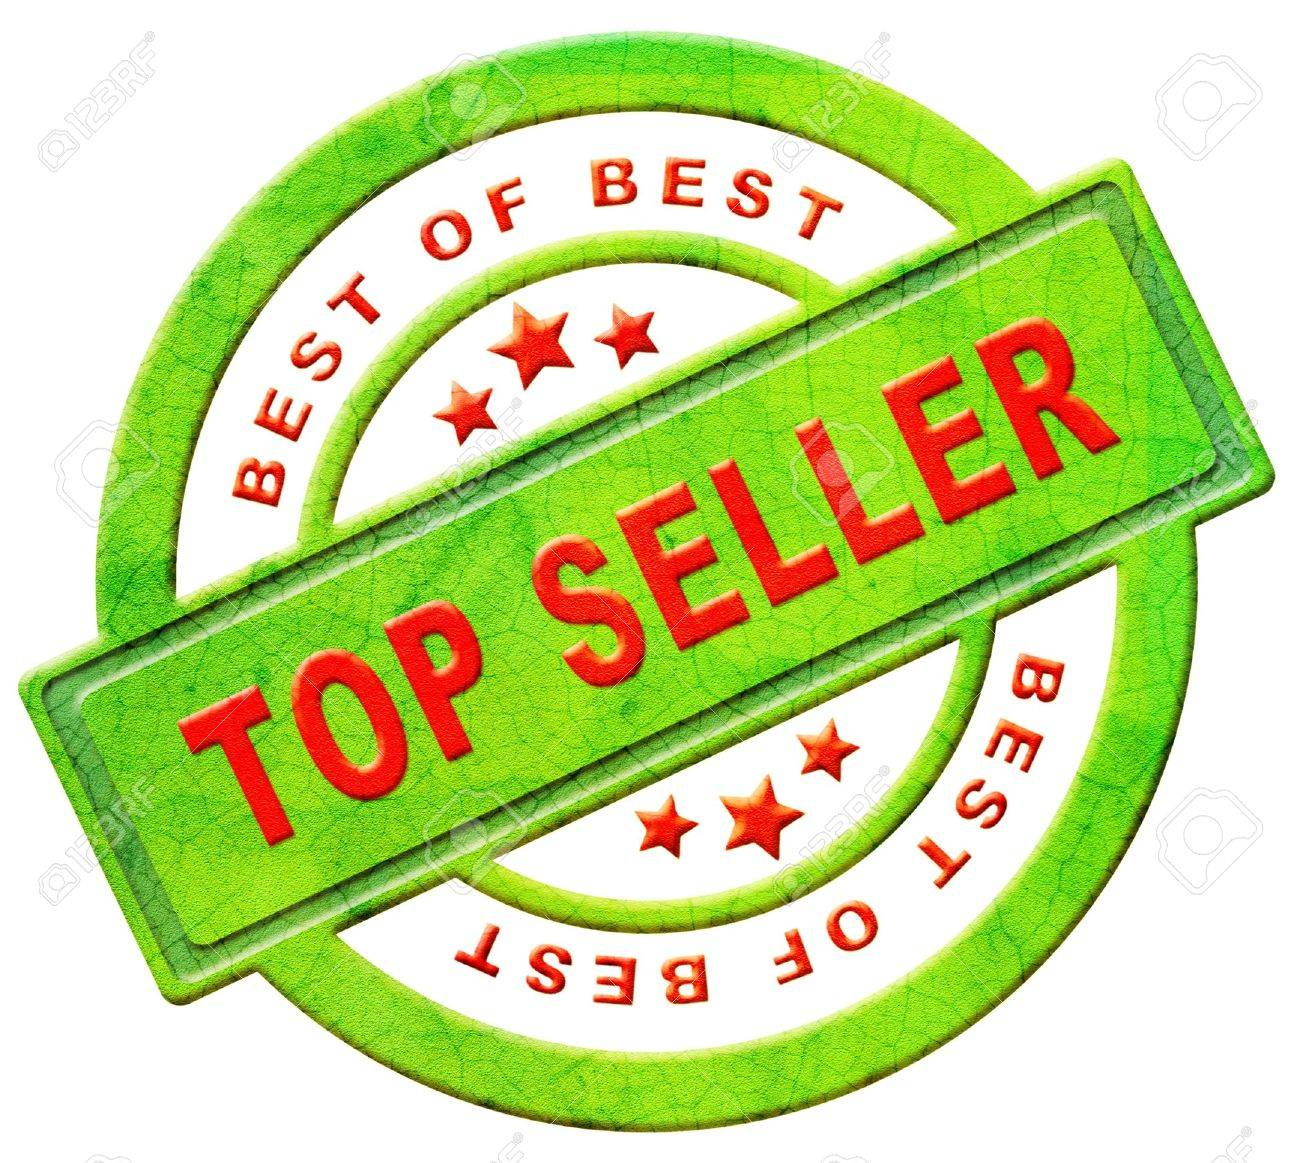 top seller icon bestseller best seller red text on green button for online internet web shop sales concept and shopping Stock Photo - 12440947